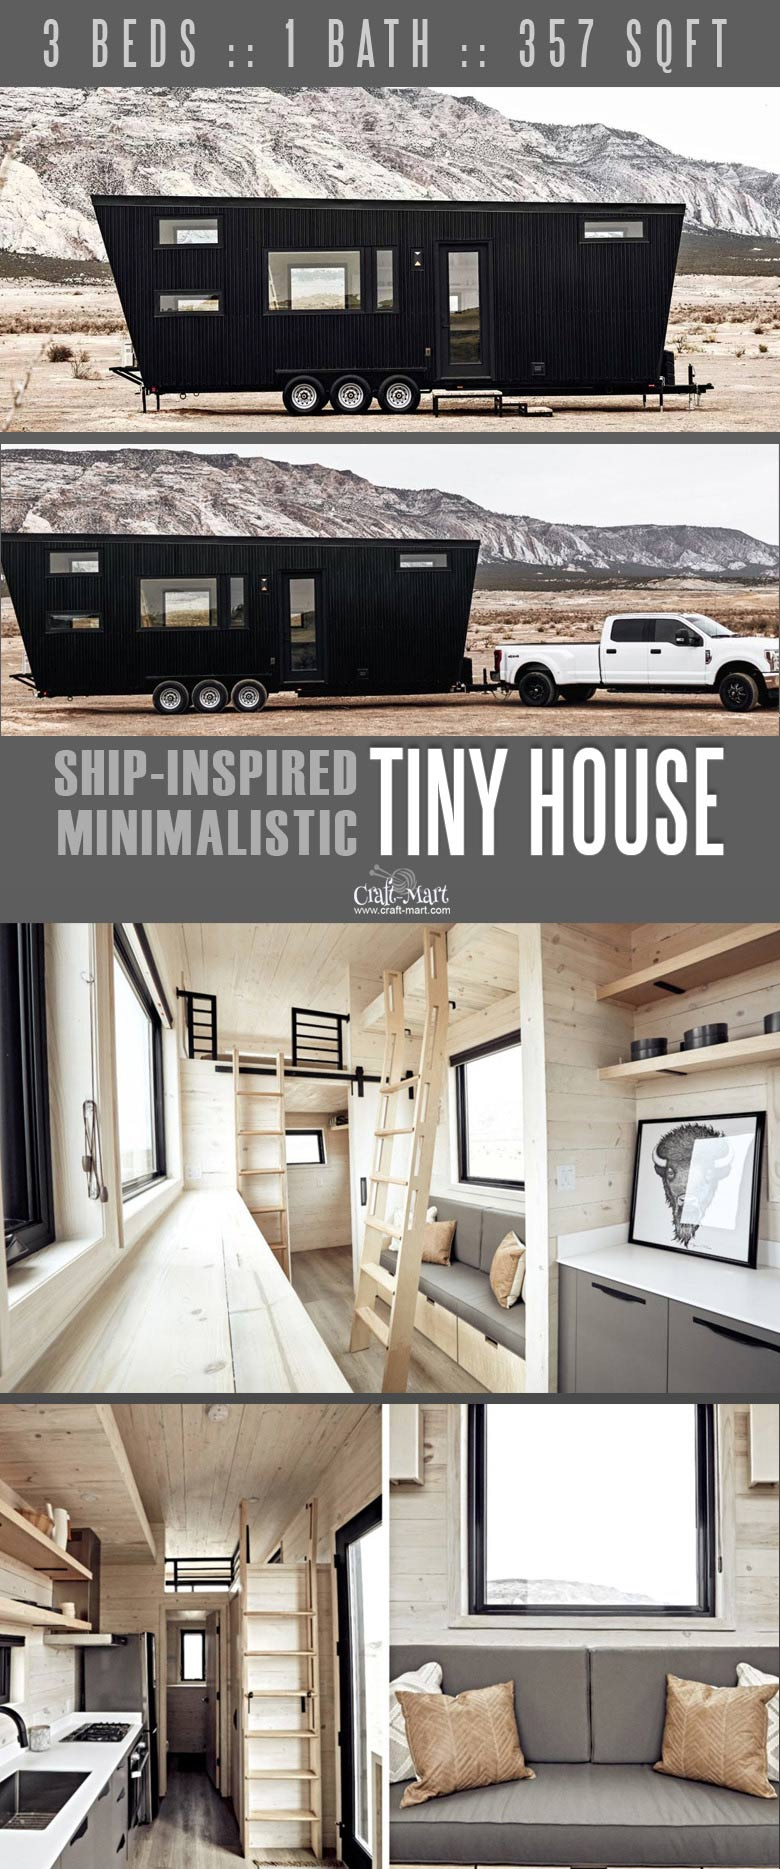 Minimalist tiny house that you may take anywhere. You can add custom features from most of the tiny home builders. Keep dreaming on or take an action and get one of these little affordable homes!#tinyhouseplans #tinyhome #tinyhouses #diywoodcrafts #diyproject #realestate #smallhouseplans